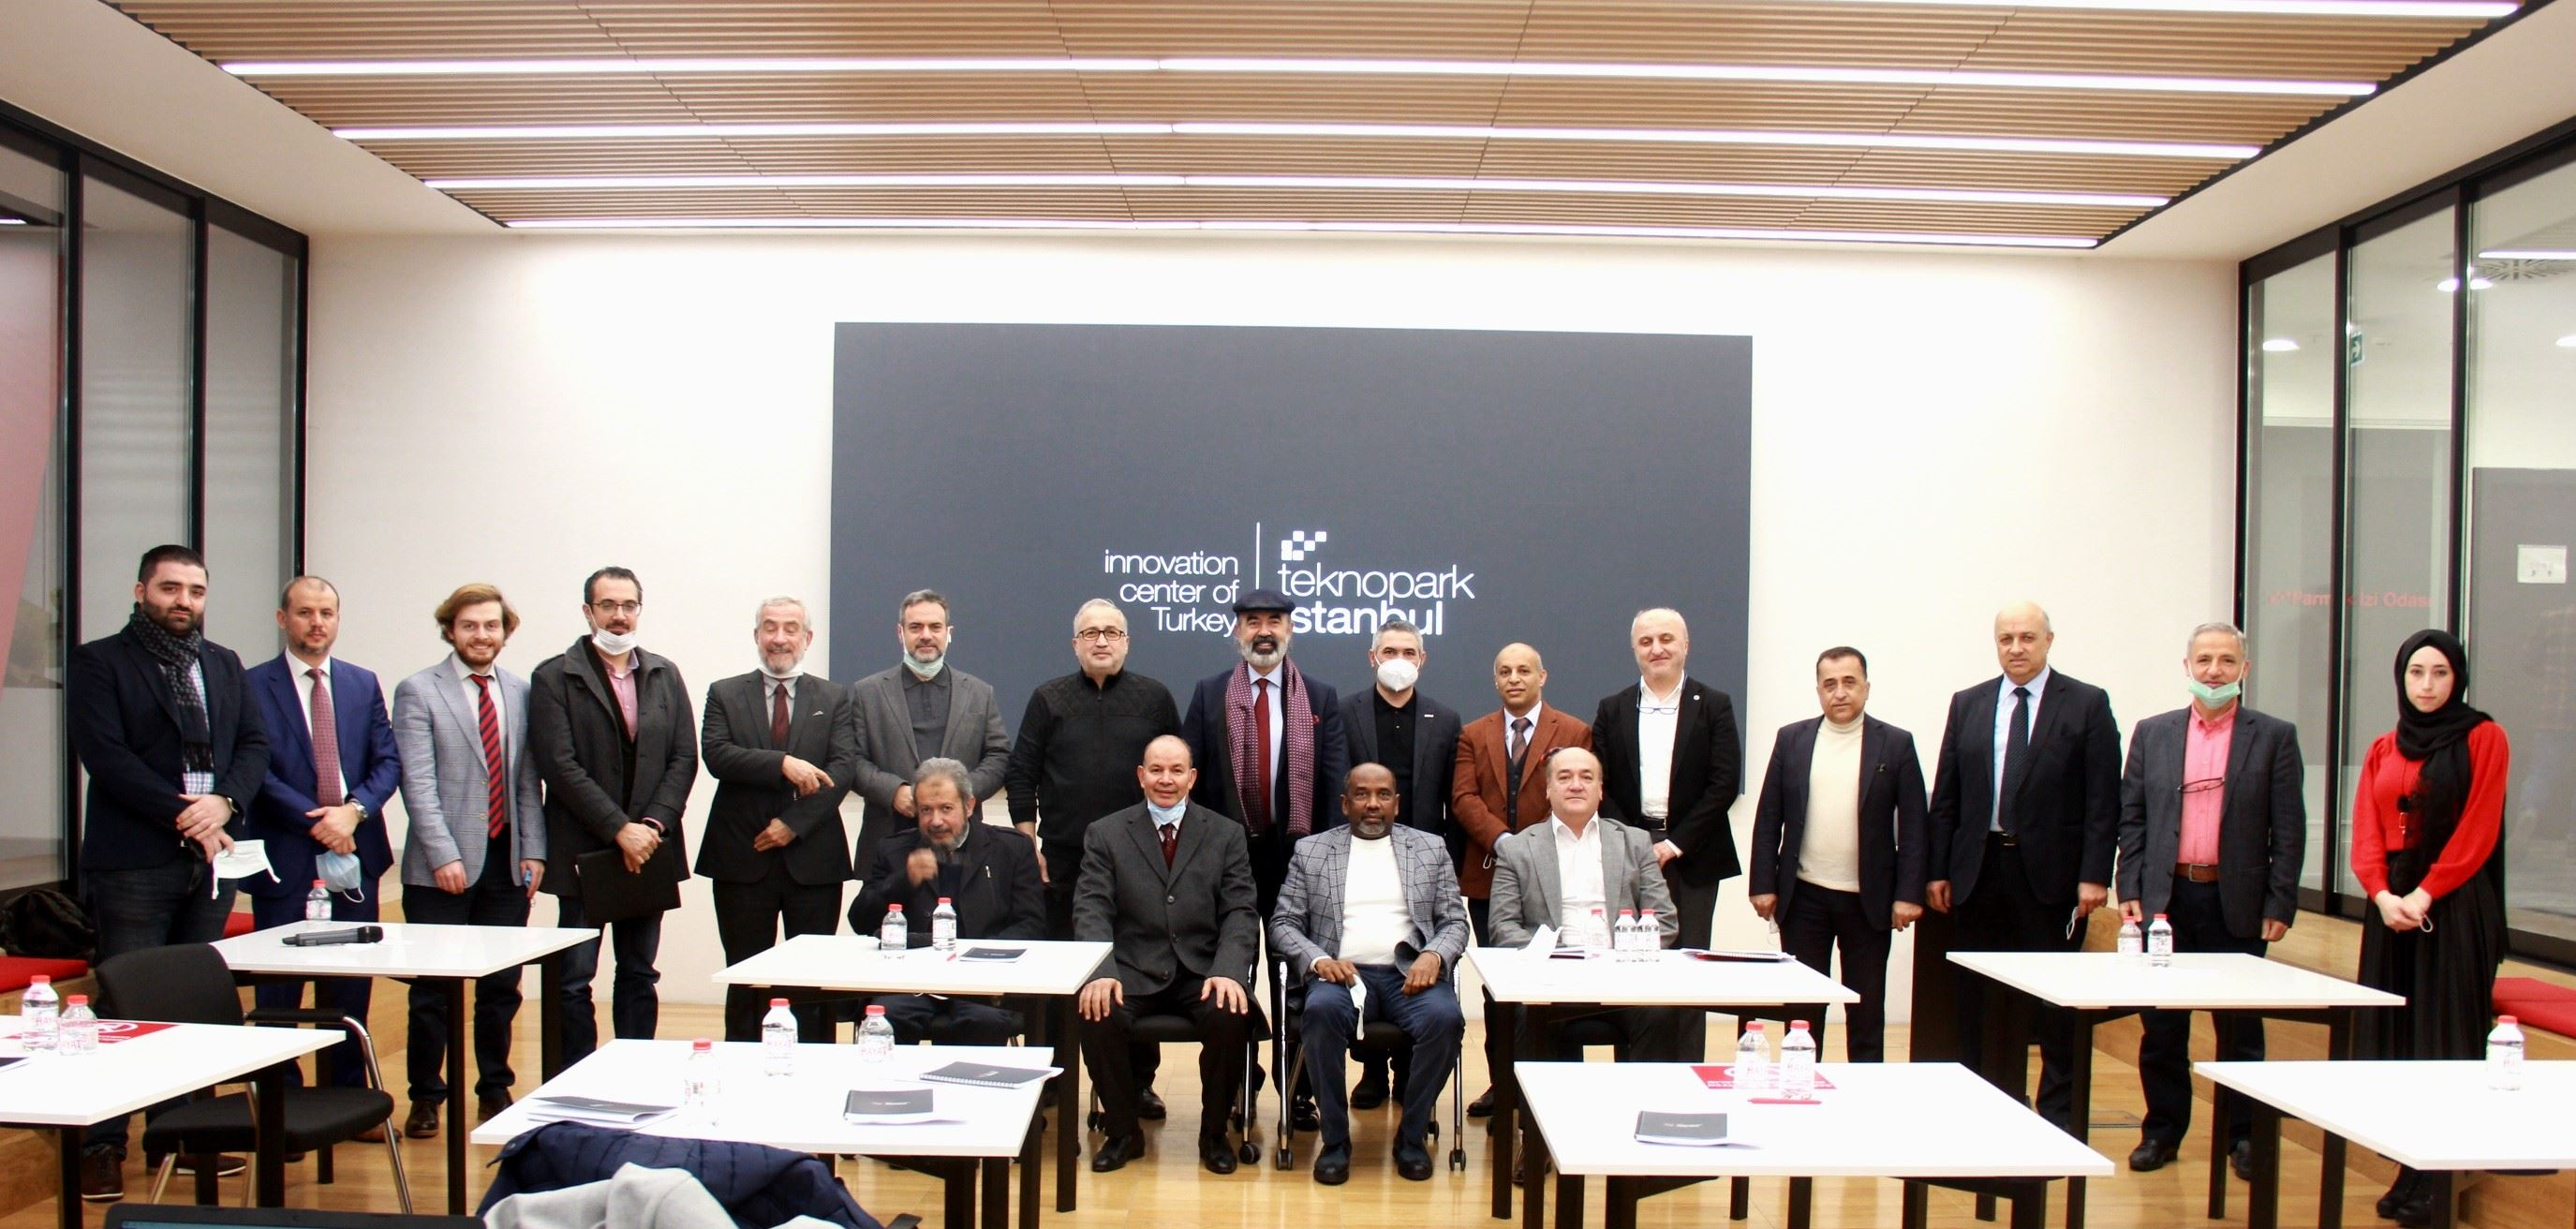 A visit to Teknopark Istanbul by the chairmans of Arab associations in Turkey